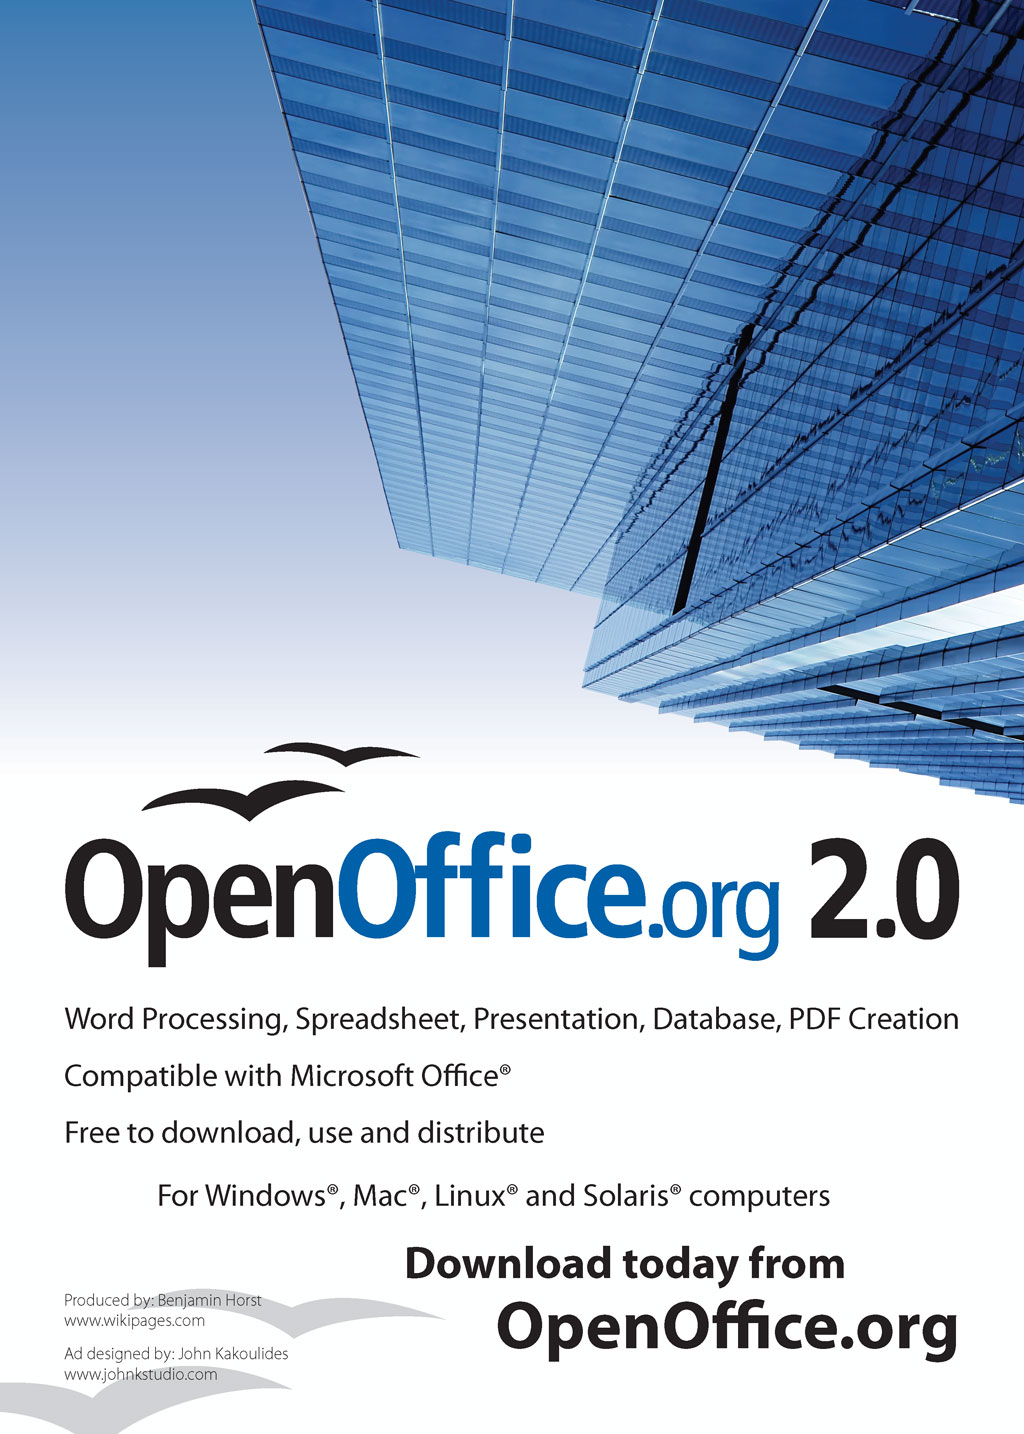 asf - Revision 1831504: /openoffice/ooo-site/trunk/content/id/images